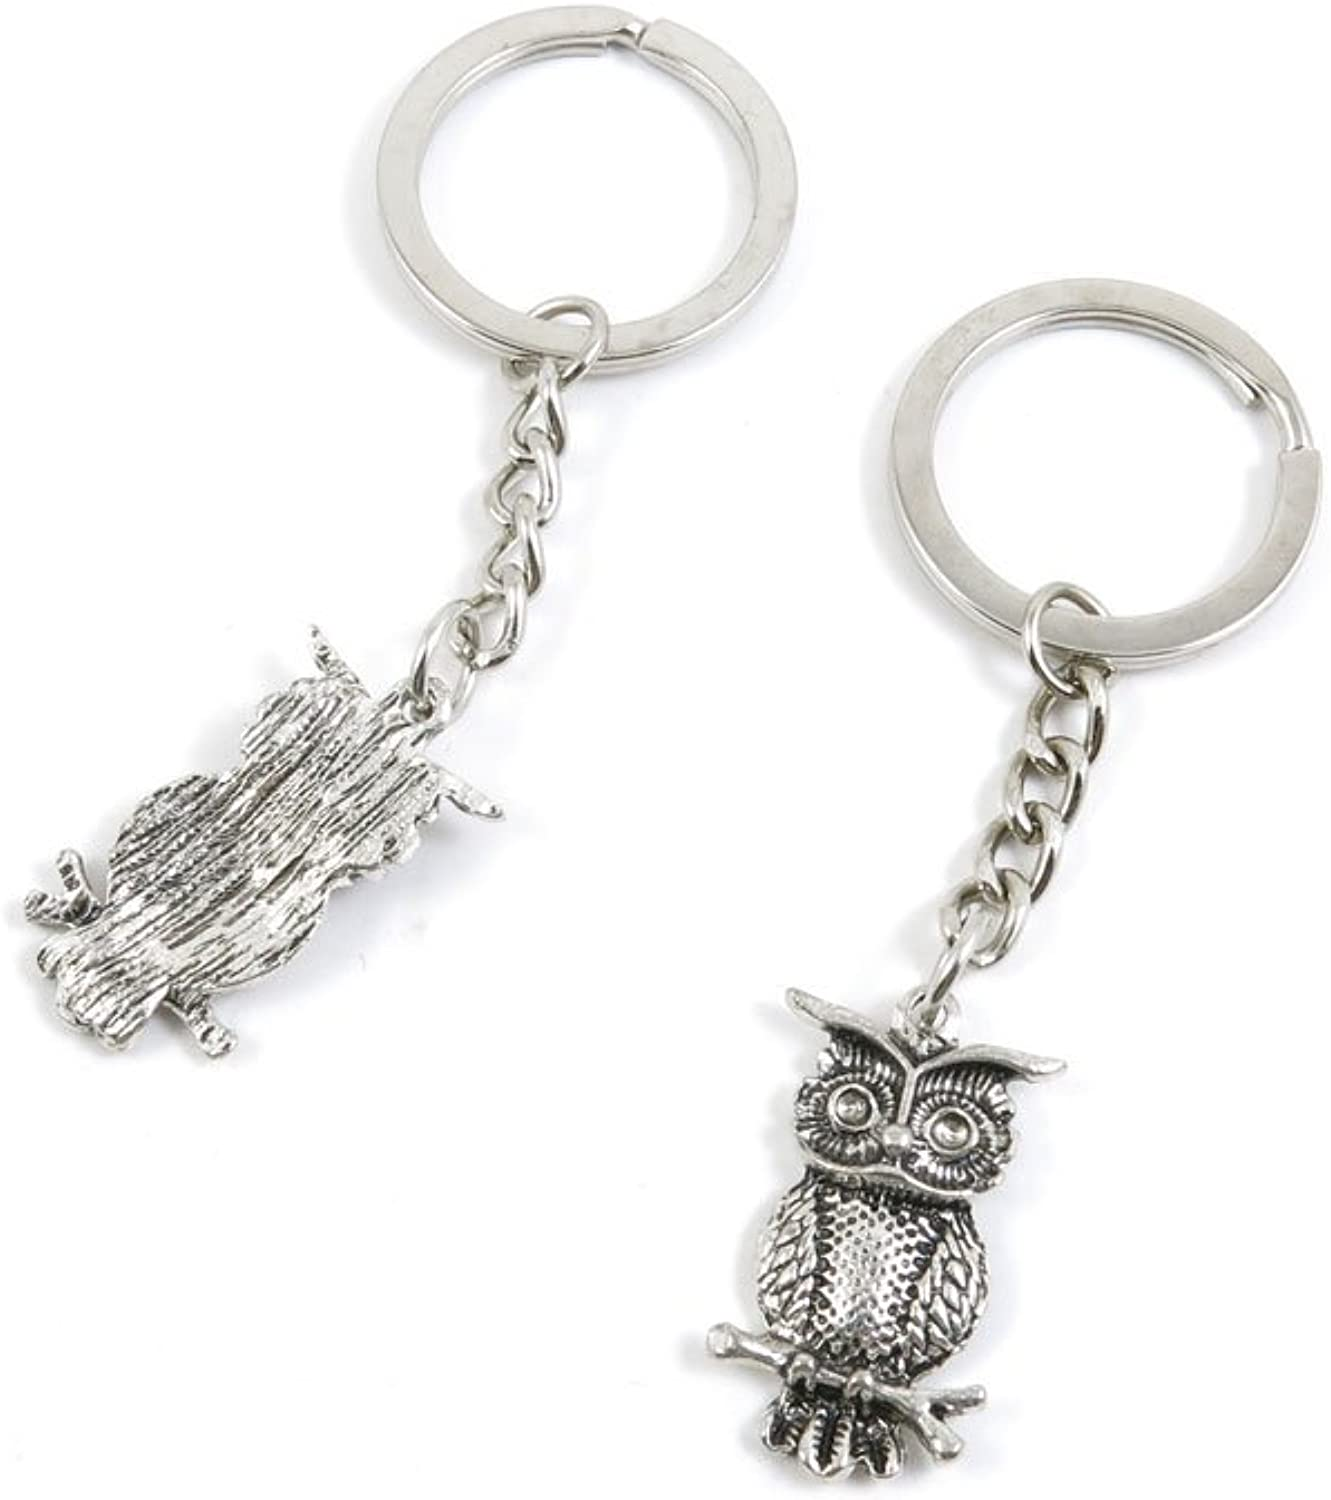 170 Pieces Fashion Jewelry Keyring Keychain Door Car Key Tag Ring Chain Supplier Supply Wholesale Bulk Lots C0WY3 Owl